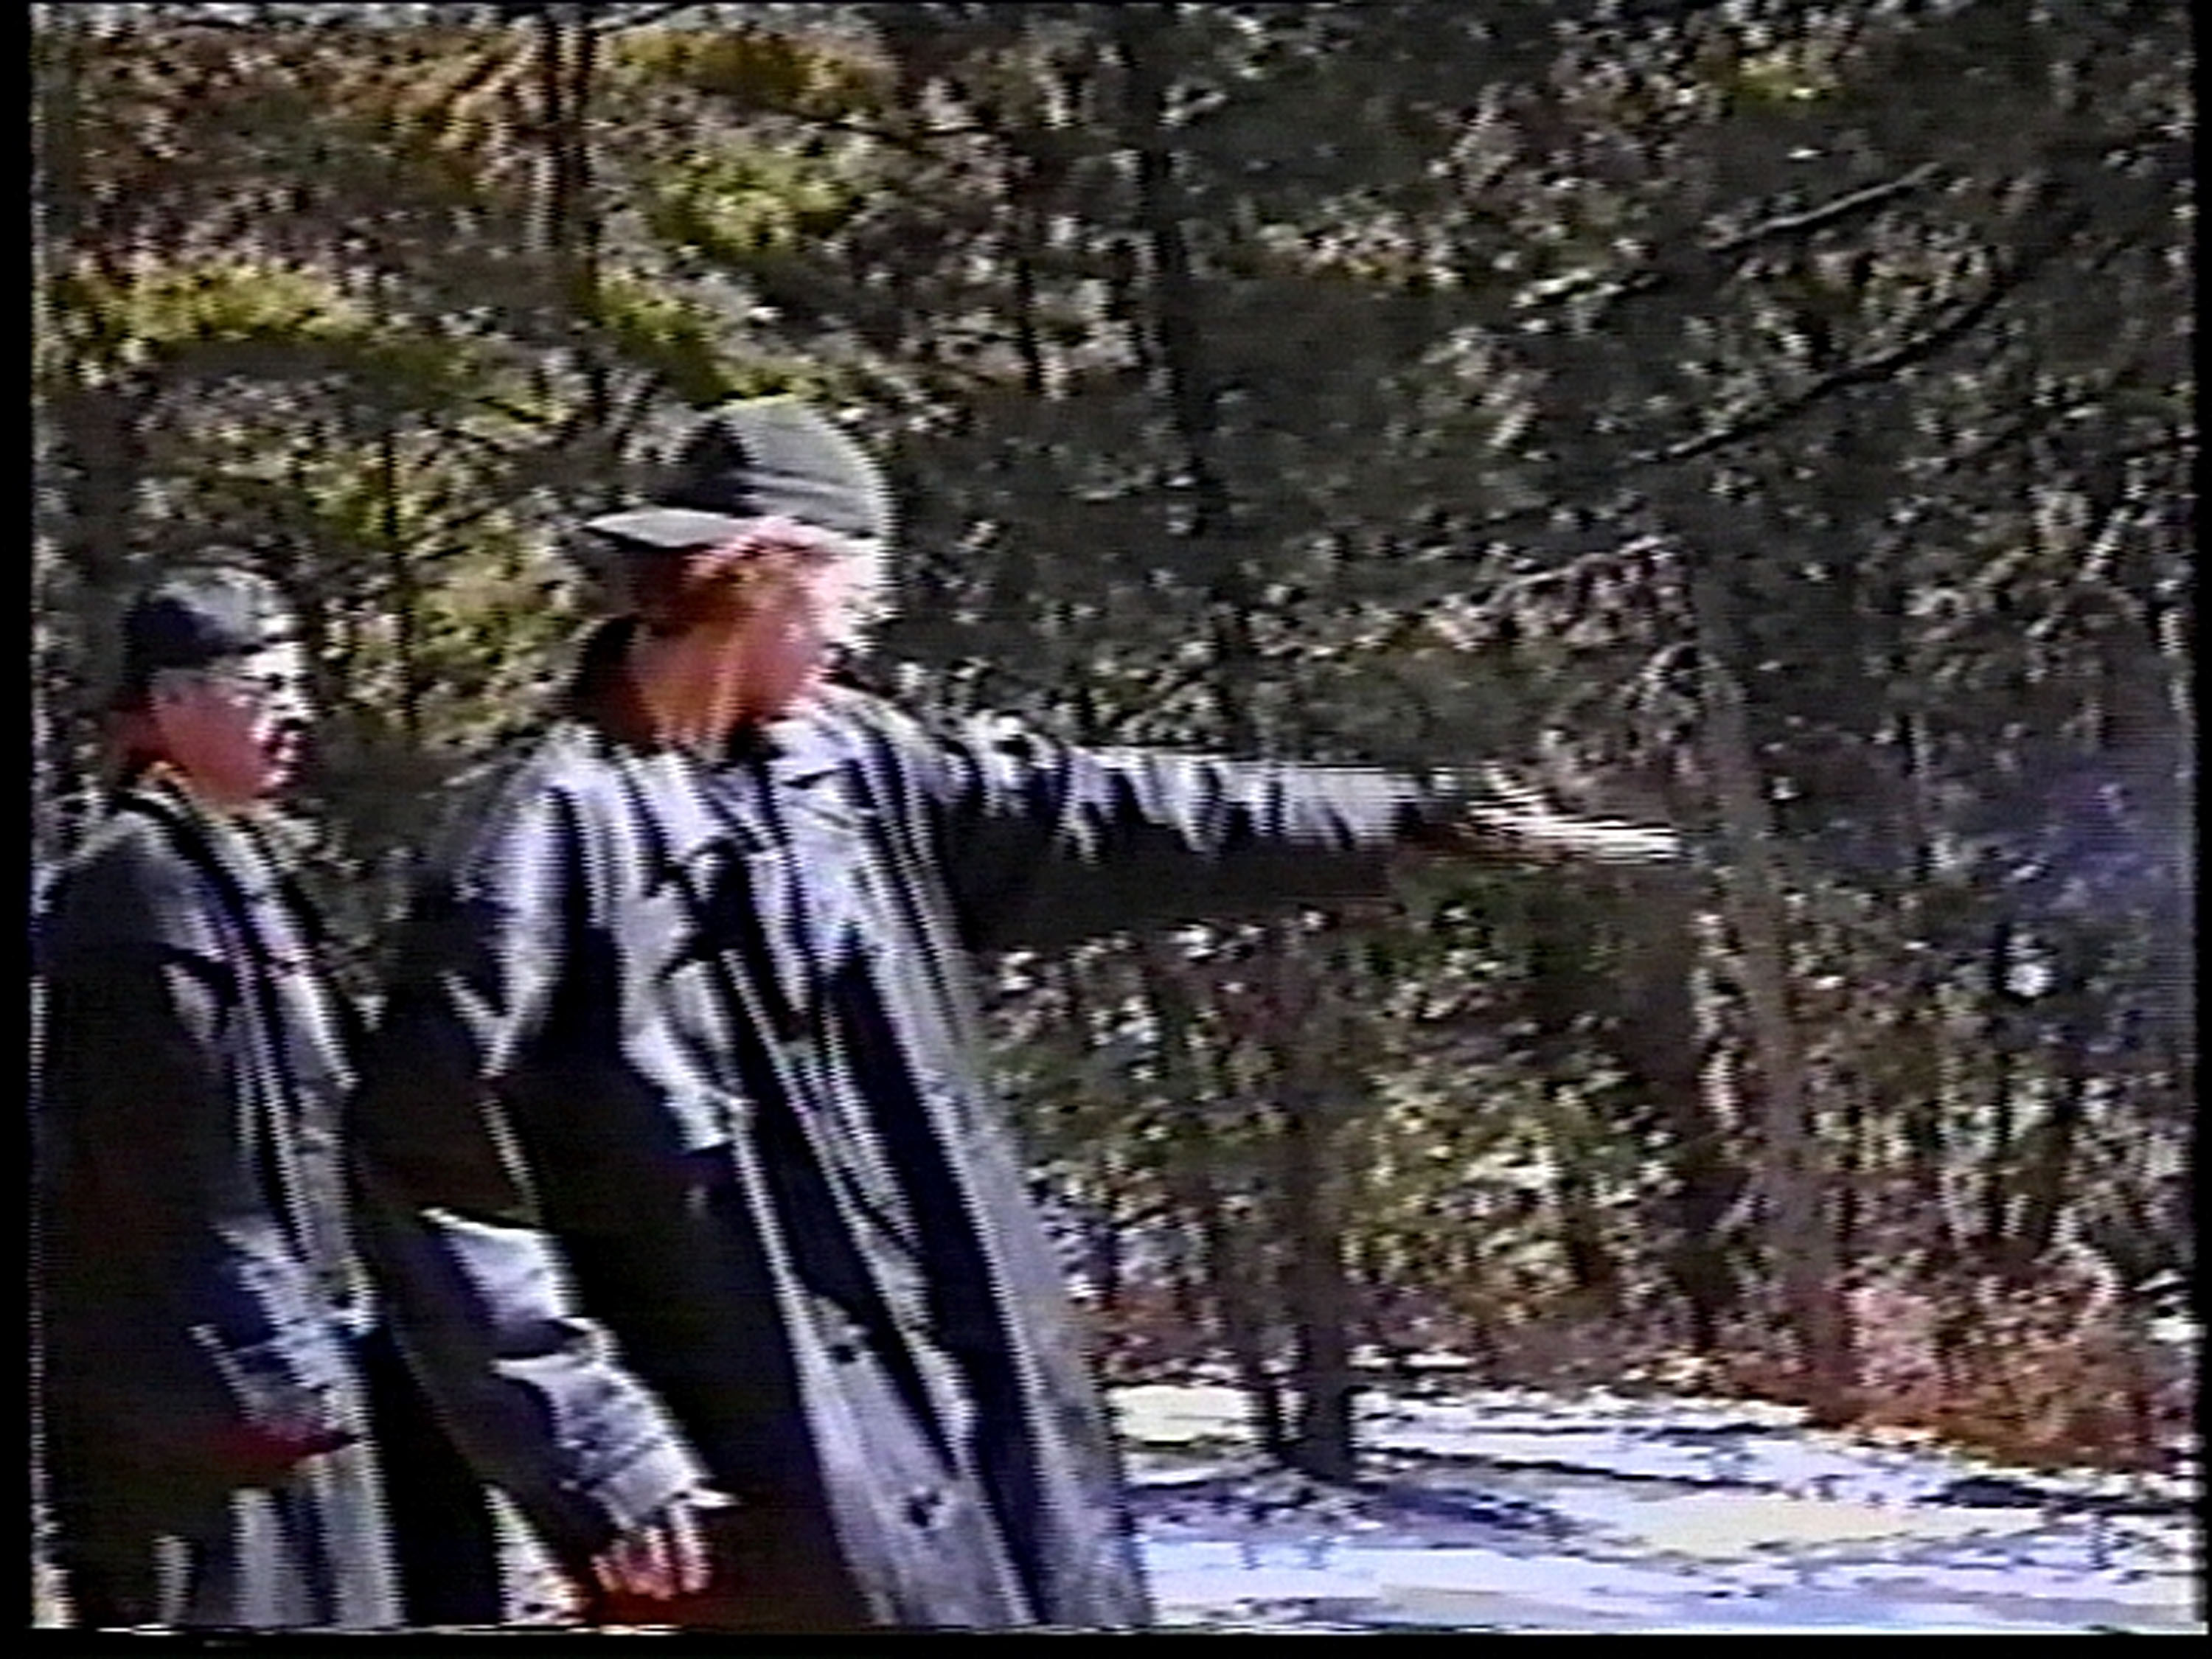 Eric Harris (L) watches as Dylan Klebold practices shooting a gun at a makeshift shooting range March 6, 1999 in Douglas County, CO in this image from video released by the Jefferson County Sheriff's Department. Approximately six weeks after this video was made, Klebold and Harris killed 13 people at Columbine High School in Littleton. Some of the weapons seen in the video were used in the shooting. (credit: Jefferson County Sheriff's Department via Getty Images)